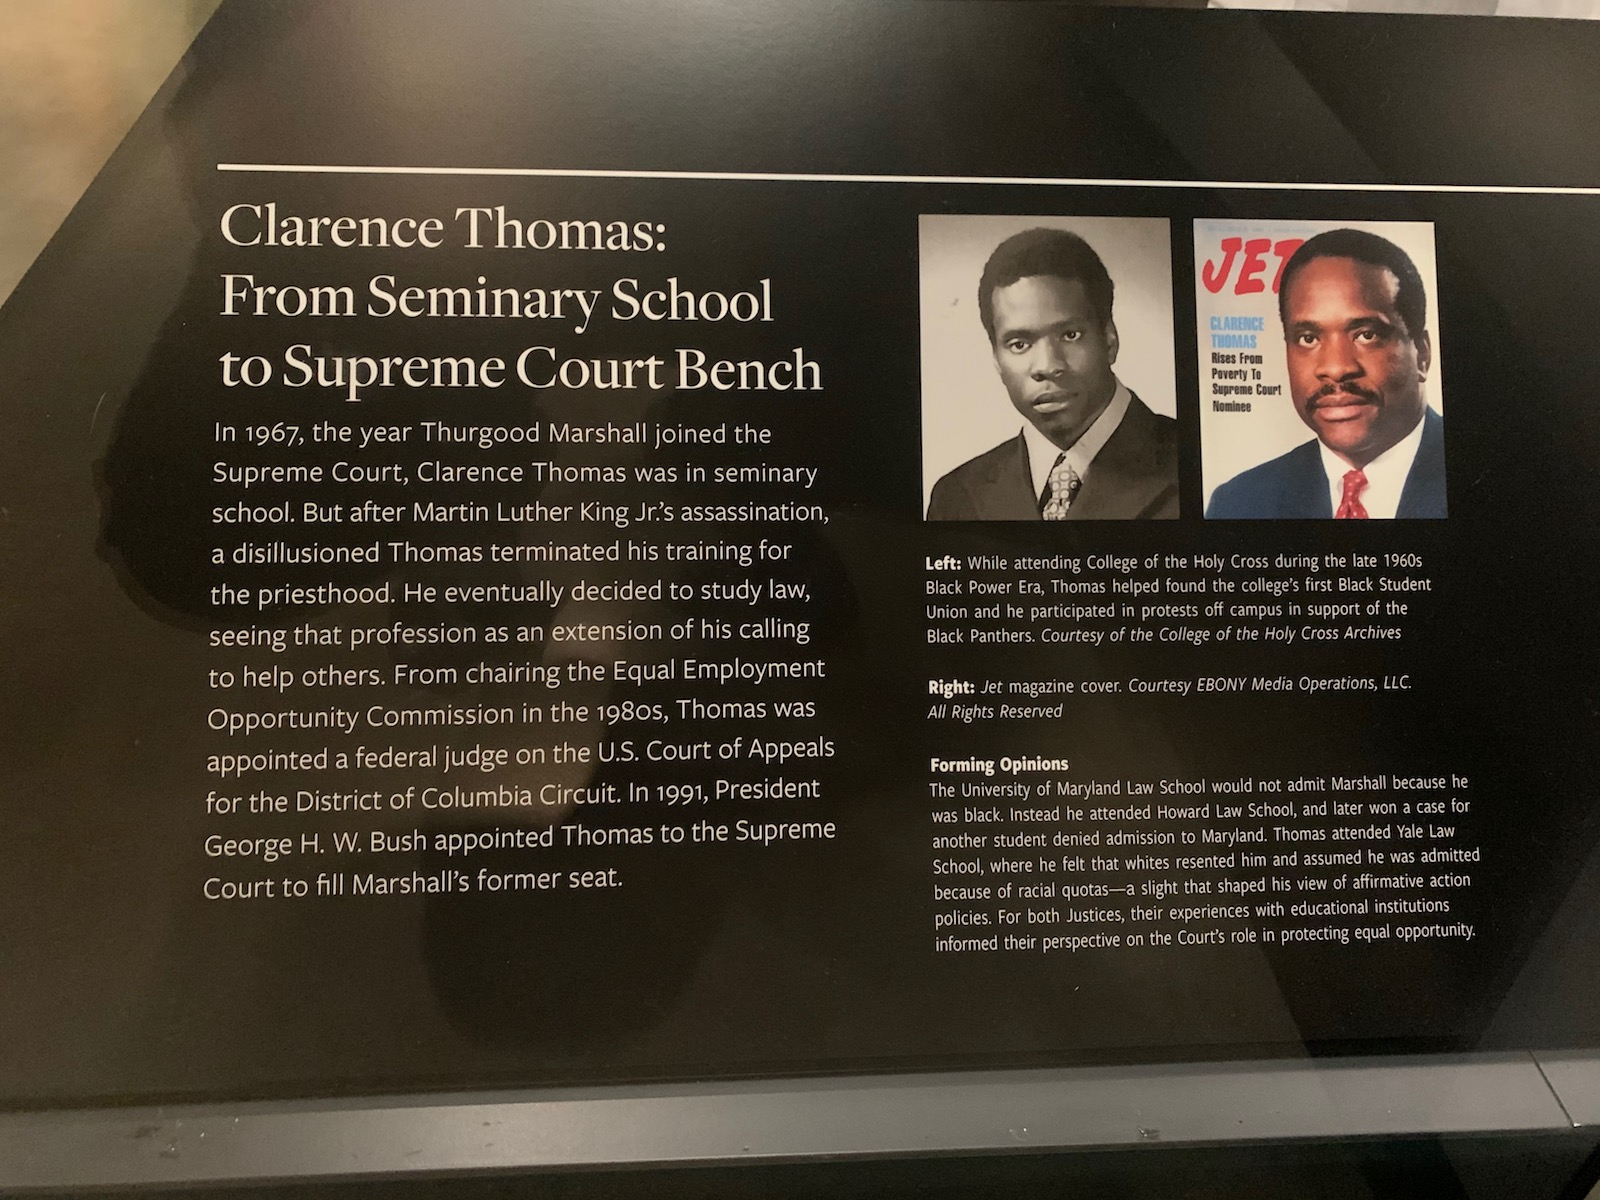 Republican Leaders Accuse the National Museum of African American History of 'Bias' in Its Display on Supreme Court Justice Clarence Thomas